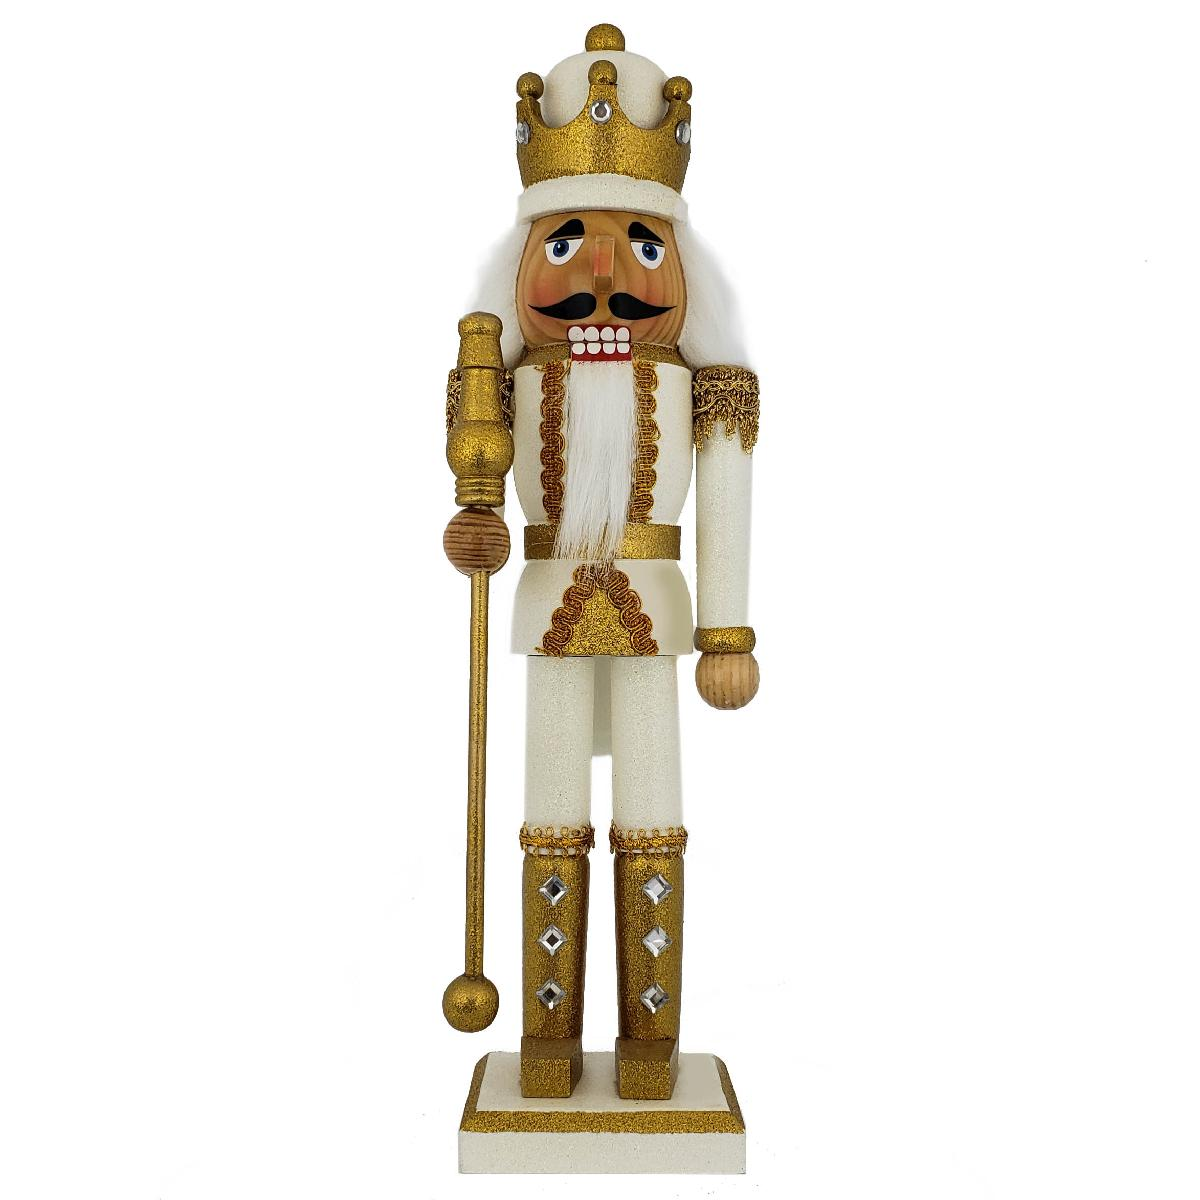 King Nutcracker Gold and White Glitter and Crown 15 inch